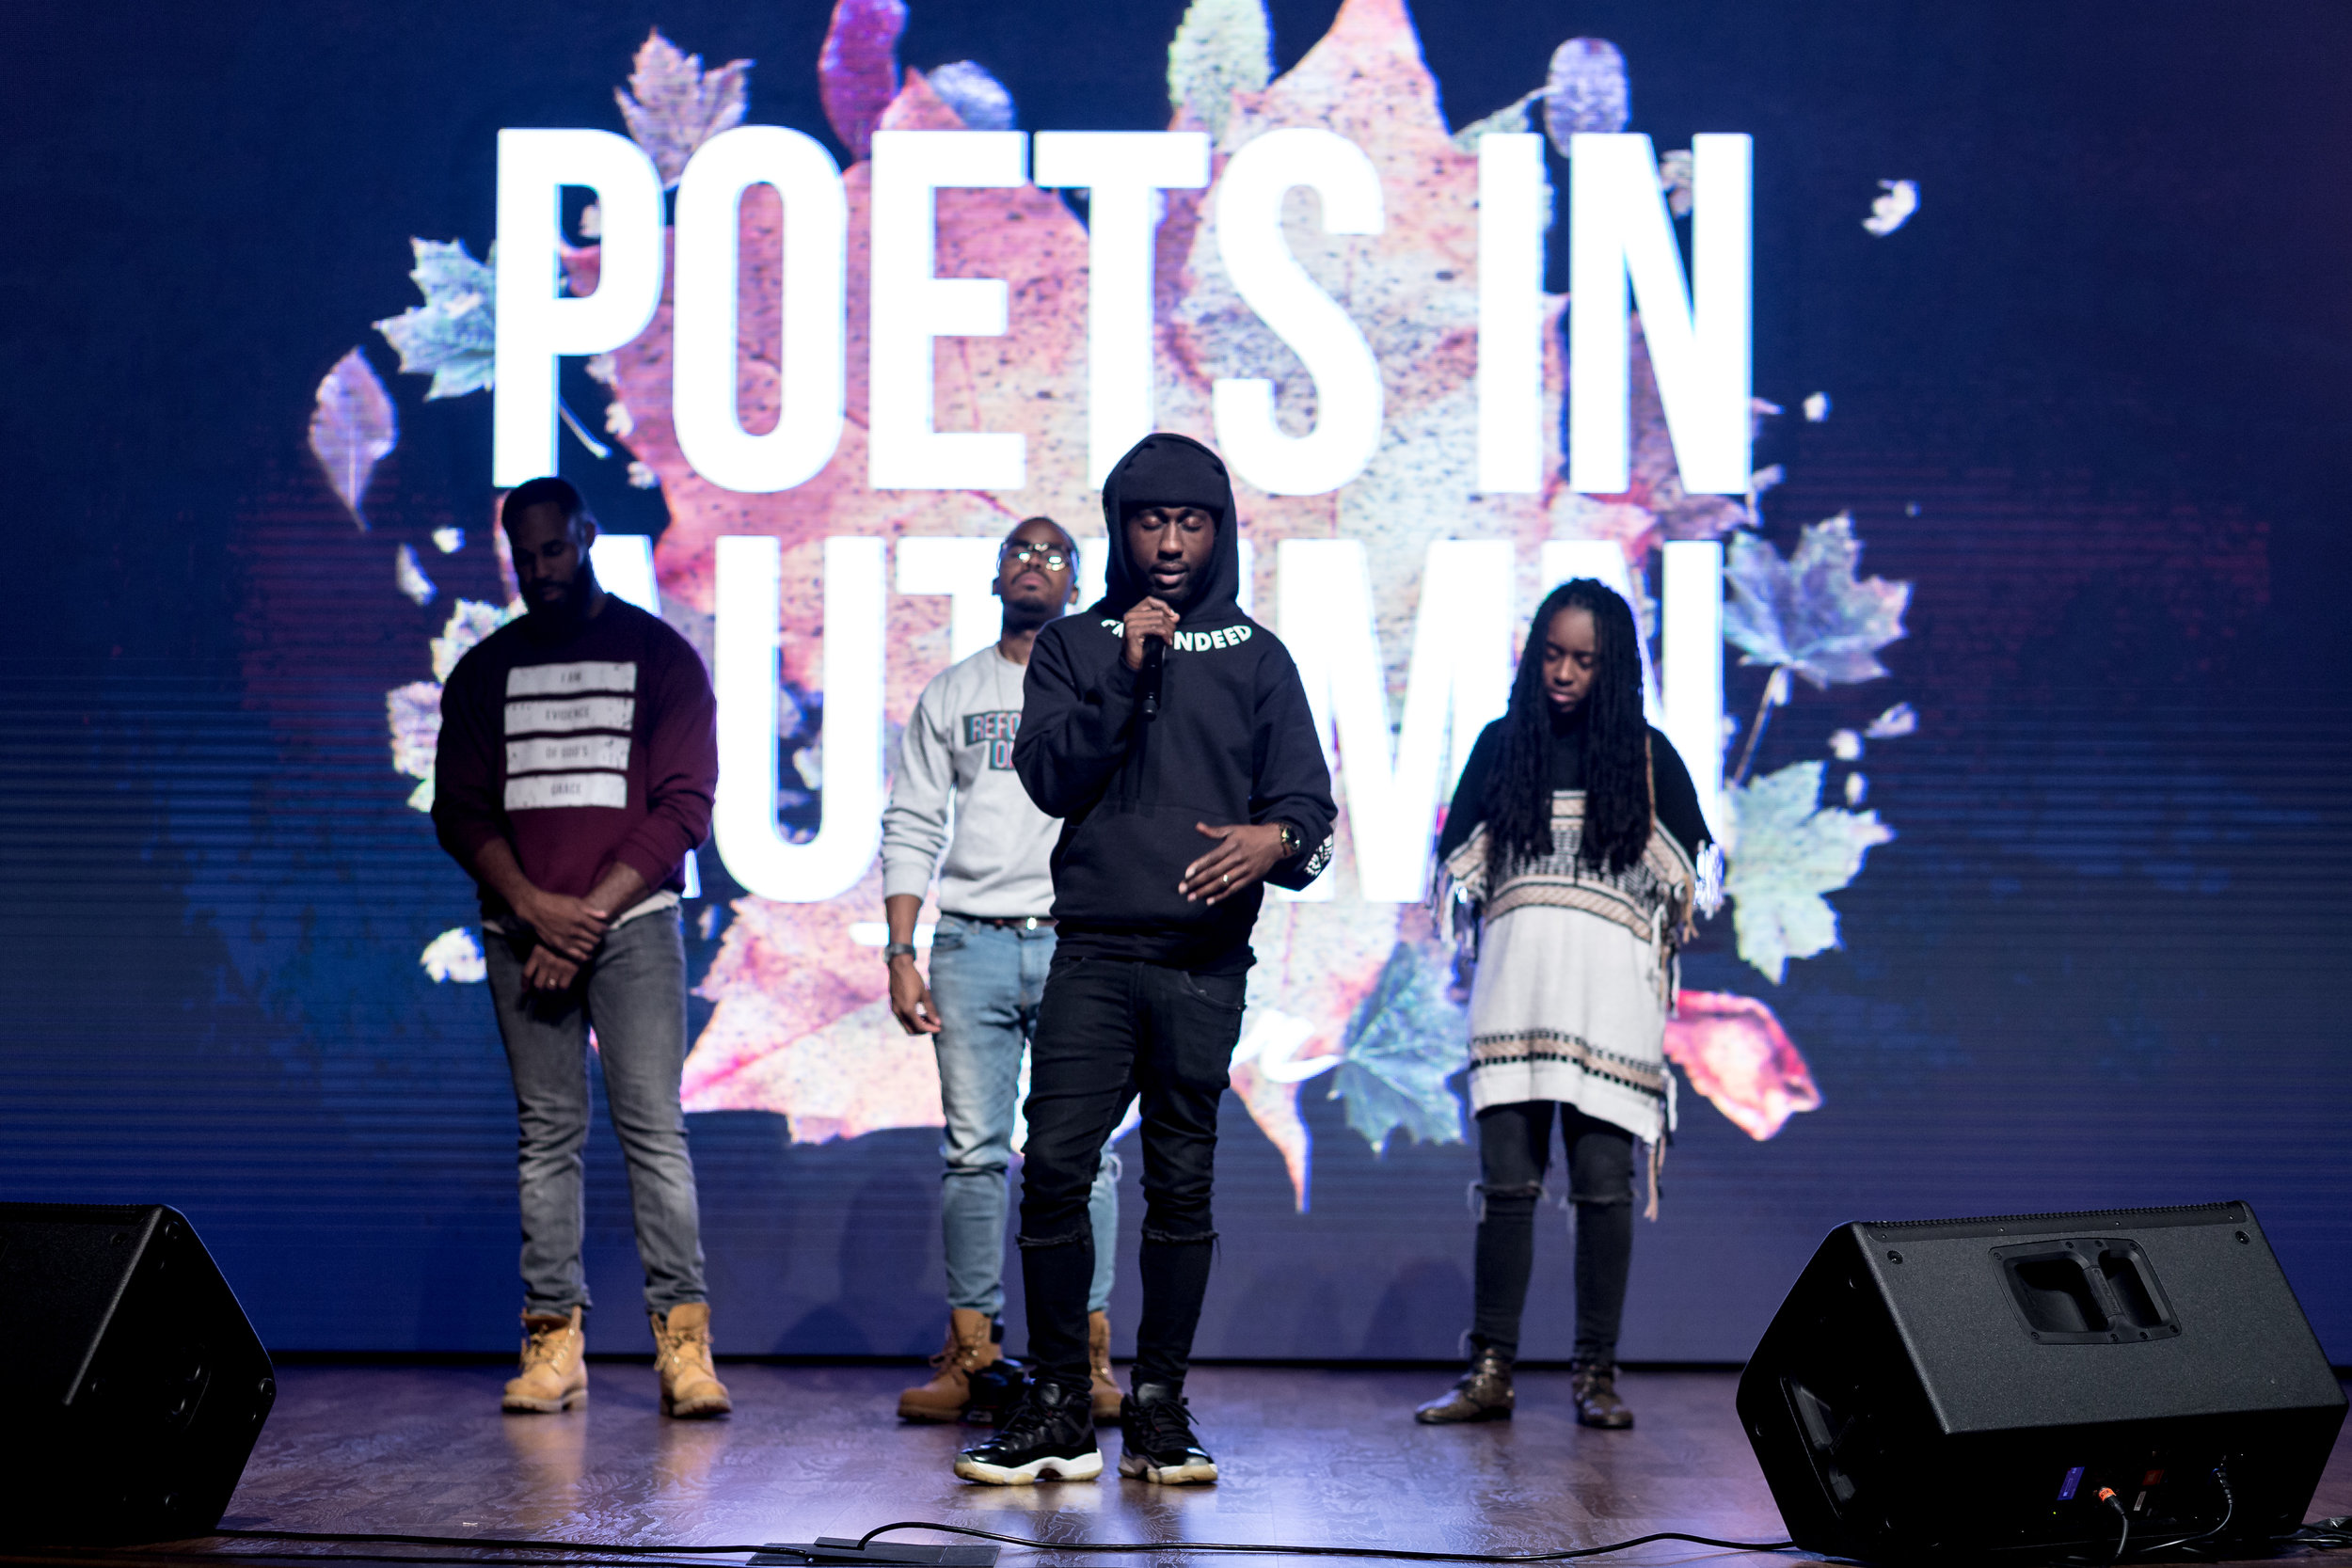 #ThePIATour - The largest urban inspirational tour in the U.S and the largest Poetry Production in the WORLD!